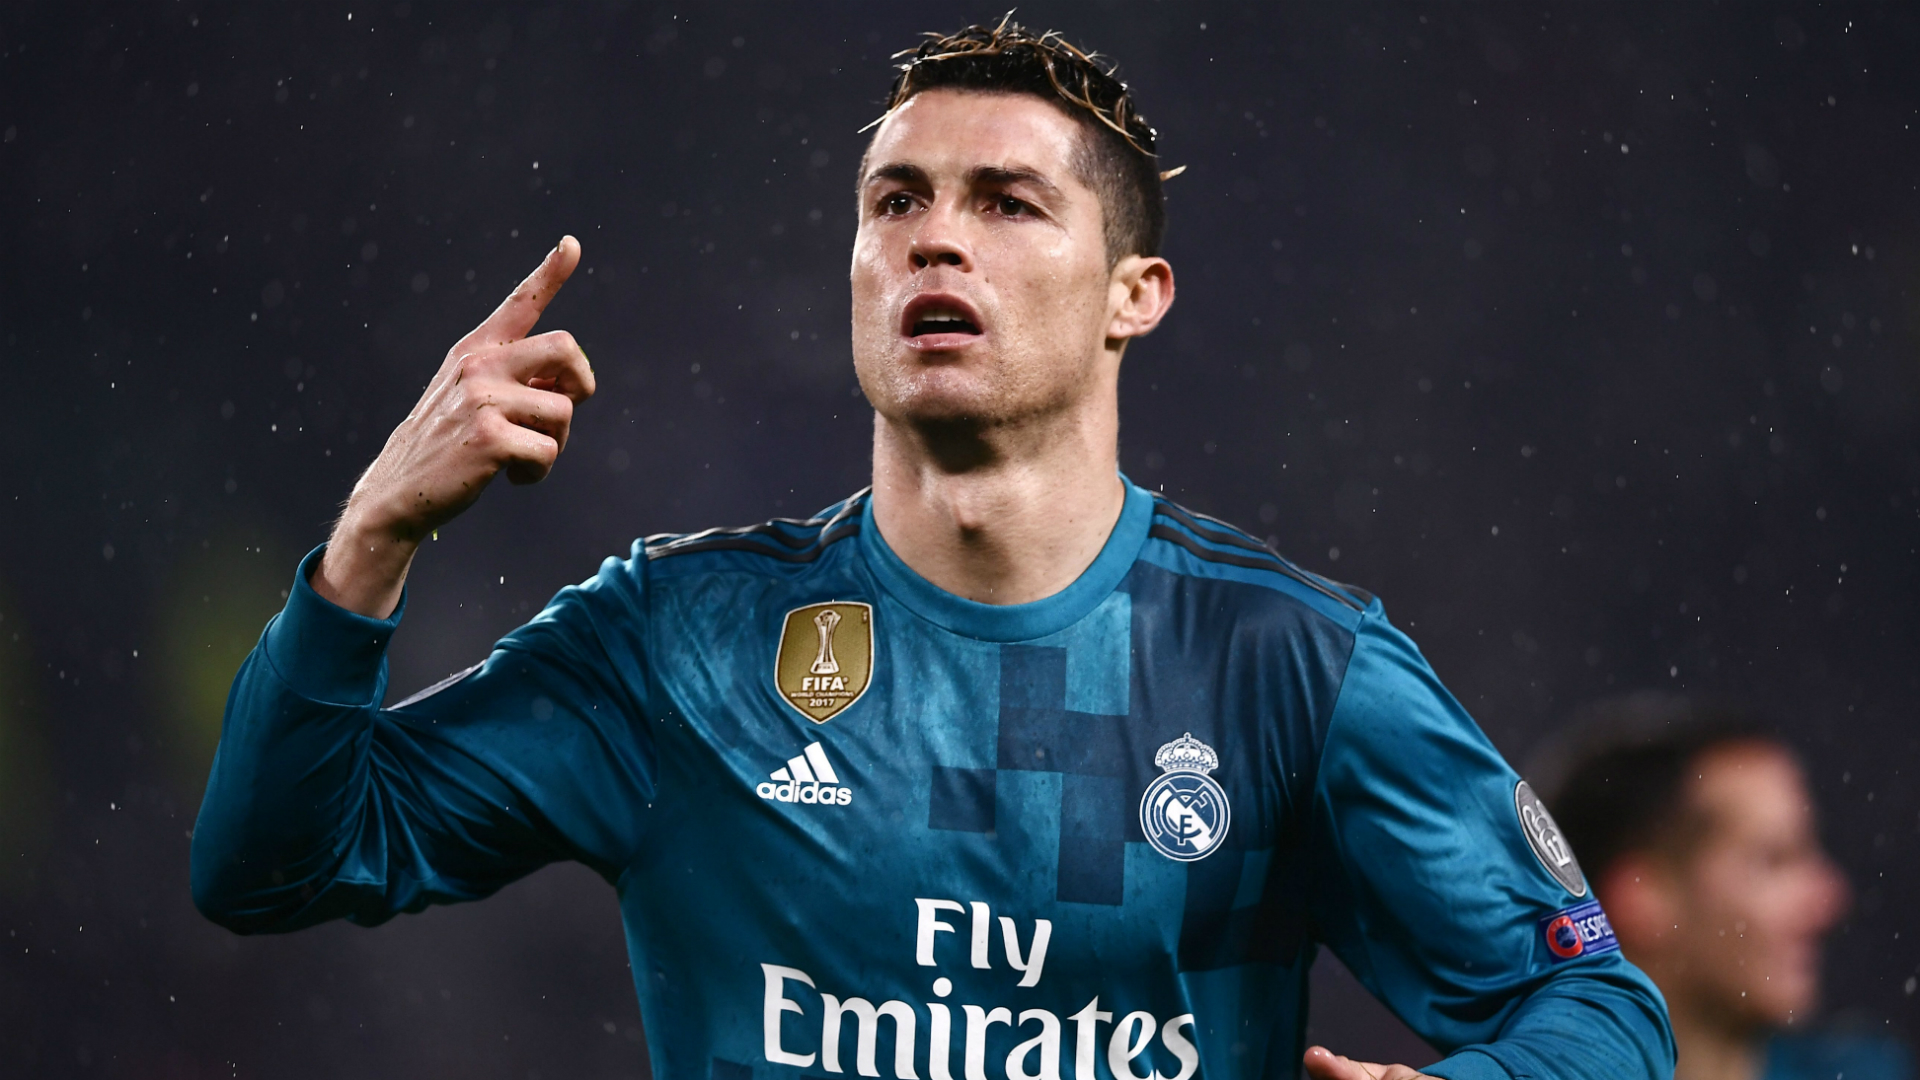 Ronaldo wants Real Madrid to sign Juventus star Miralem Pjanic